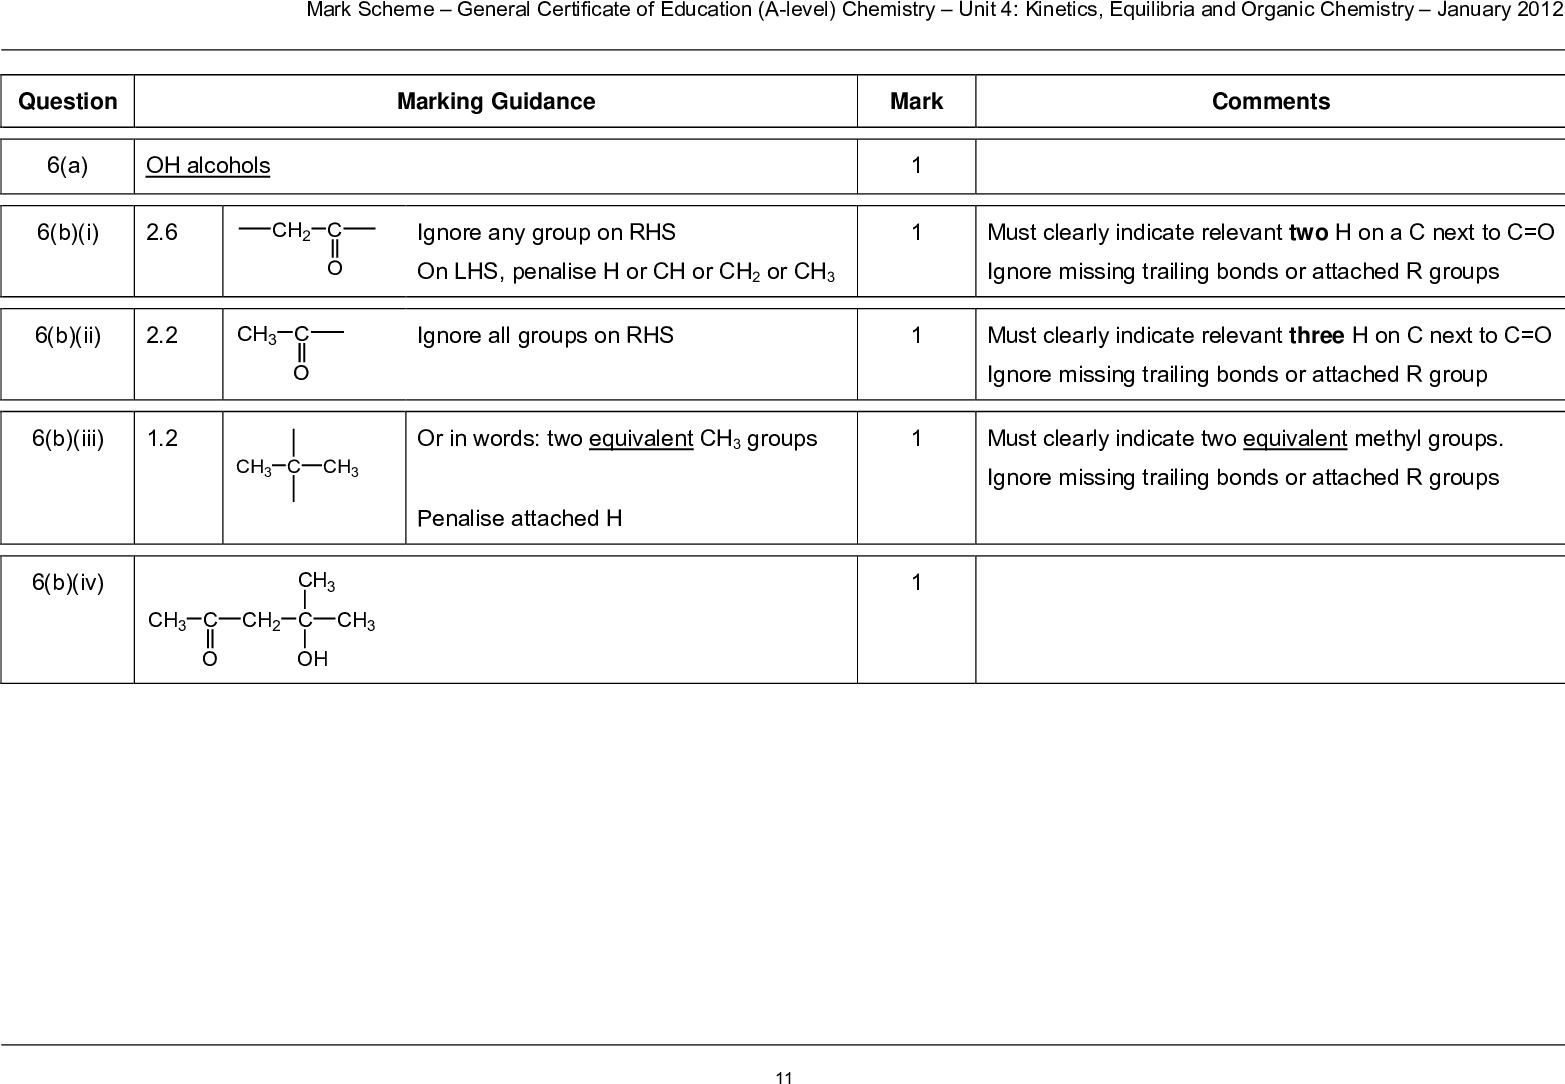 mark scheme general certificate of education a level chemistry unit kinetics equilibria and organic chemistry january marking guidance mark comments b i ch c o ignore any group on rhs on lhs penalise h or ch or ch or ch ignore all groups on rhs or in words two equivalent ch groups penalise attached h must clearly indicate relevant two h on a c next to c o ignore missing trailing bonds or attached r groups must clearly indicate relevant three h on c next to c o ignore missing trailing bonds or attached r group must clearly indicate two equivalent methyl groups ignore missing trailing bonds or attached r groups question a oh alcohols b ii ch c o b iii b iv ch c o ch c ch ch ch ch c oh